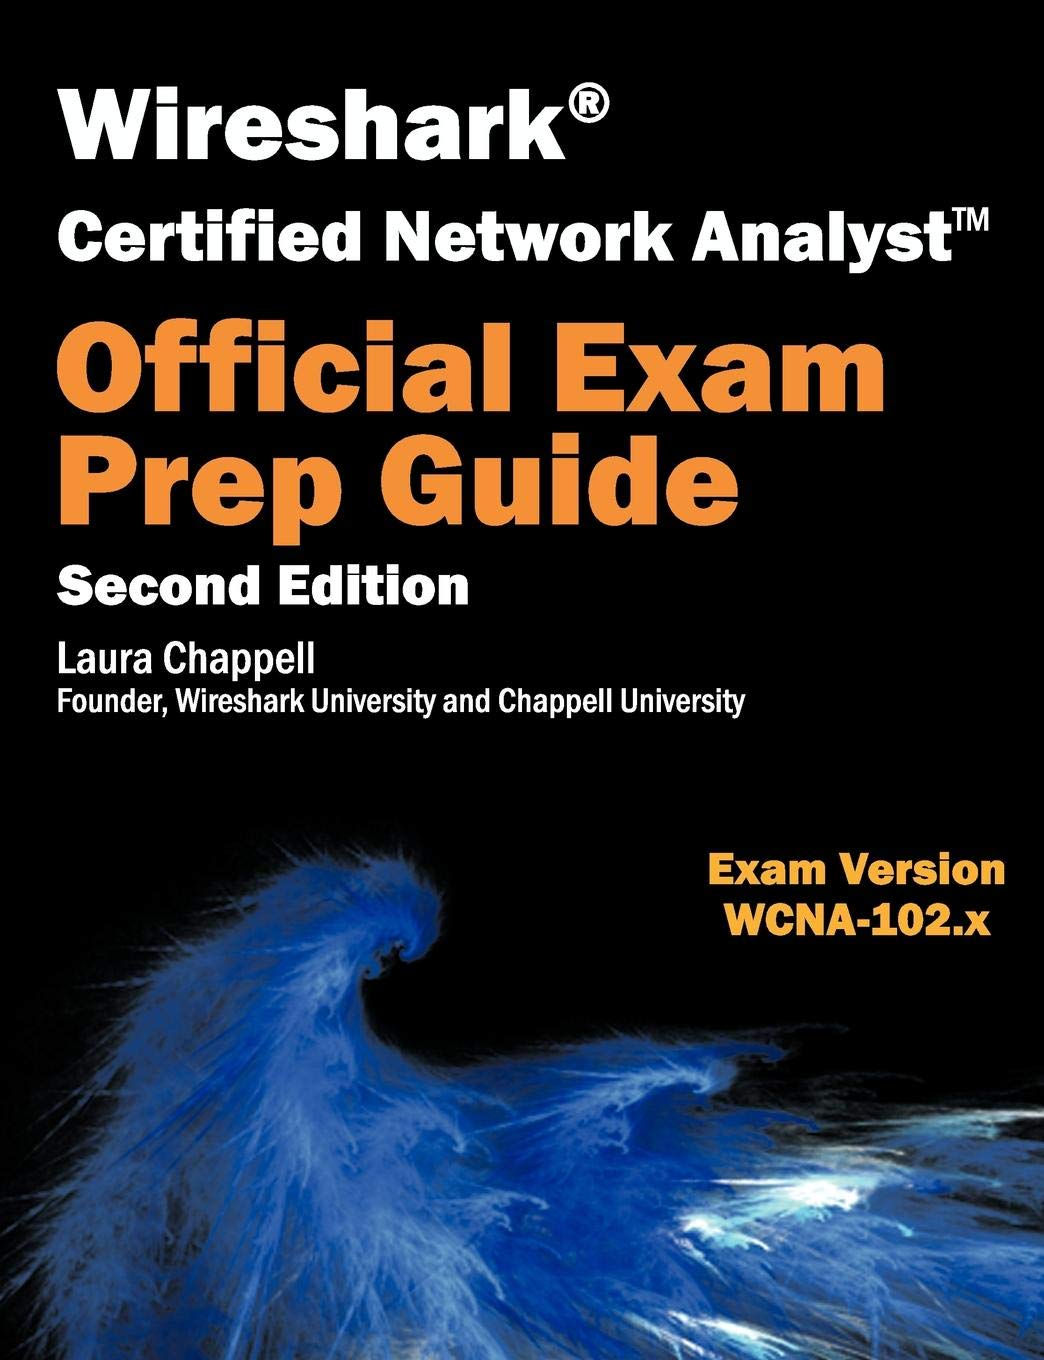 Wireshark Certified Network Analyst Exam Prep Guide Second Edition